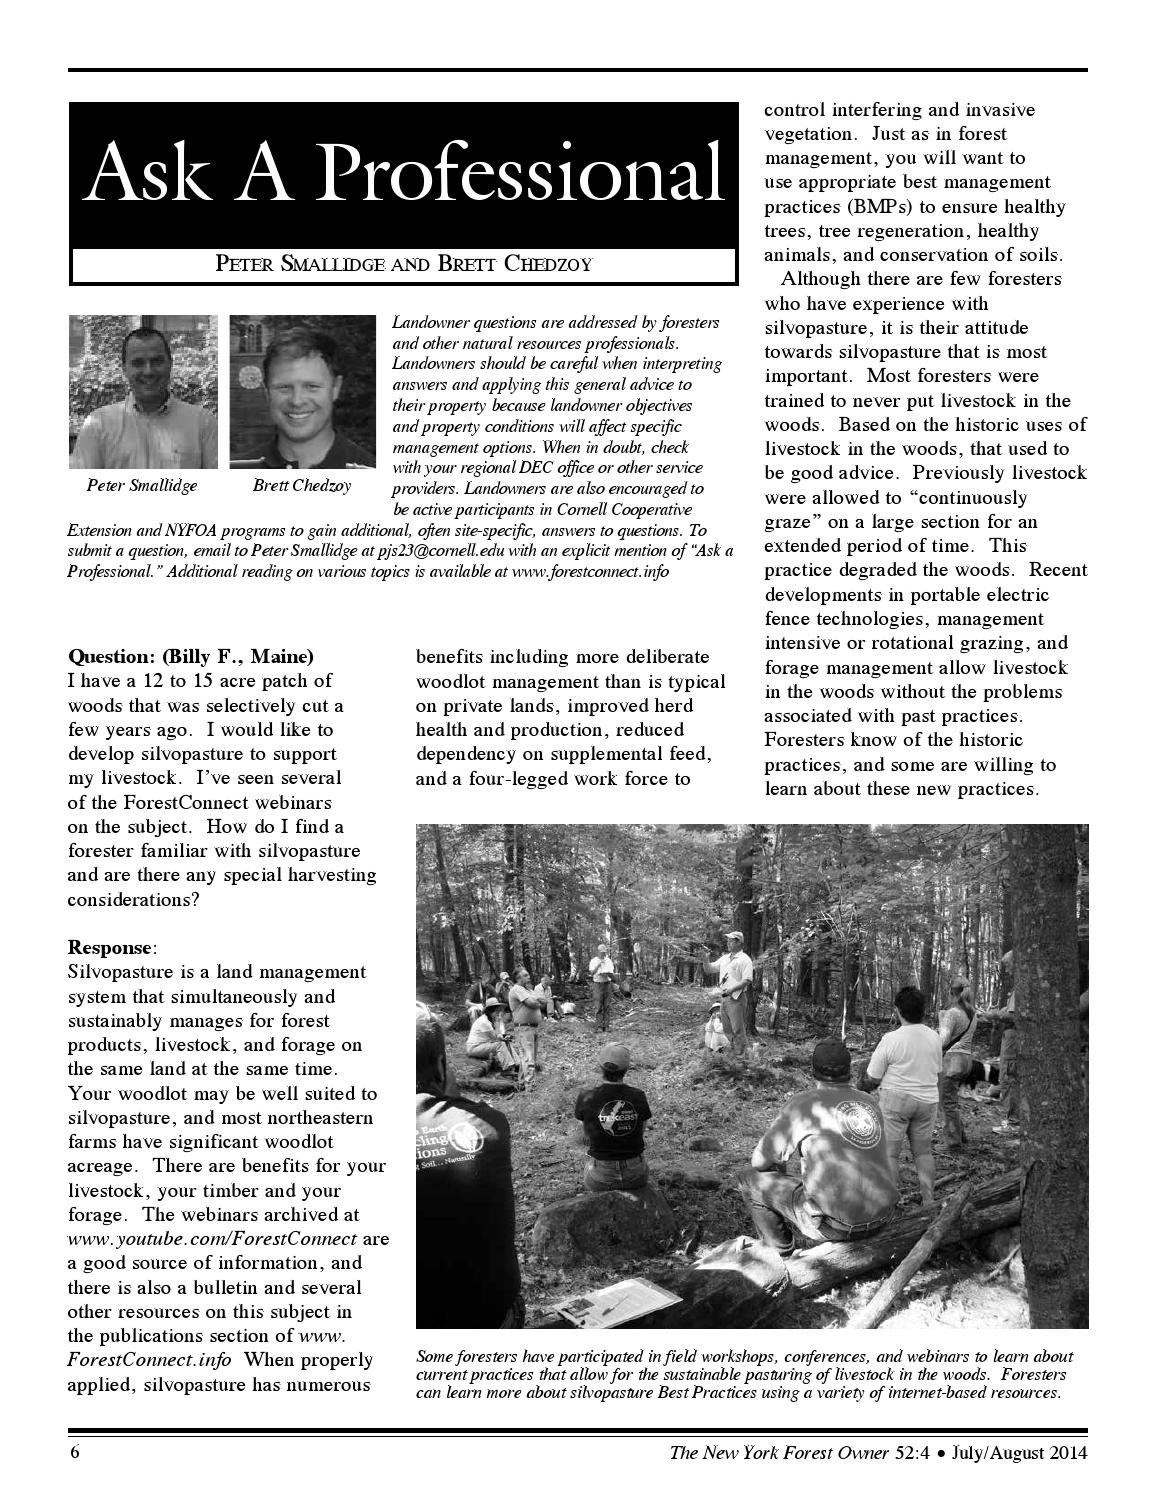 The New York Forest Owner - Volume 52 Number 4 by Jim Minor - issuu